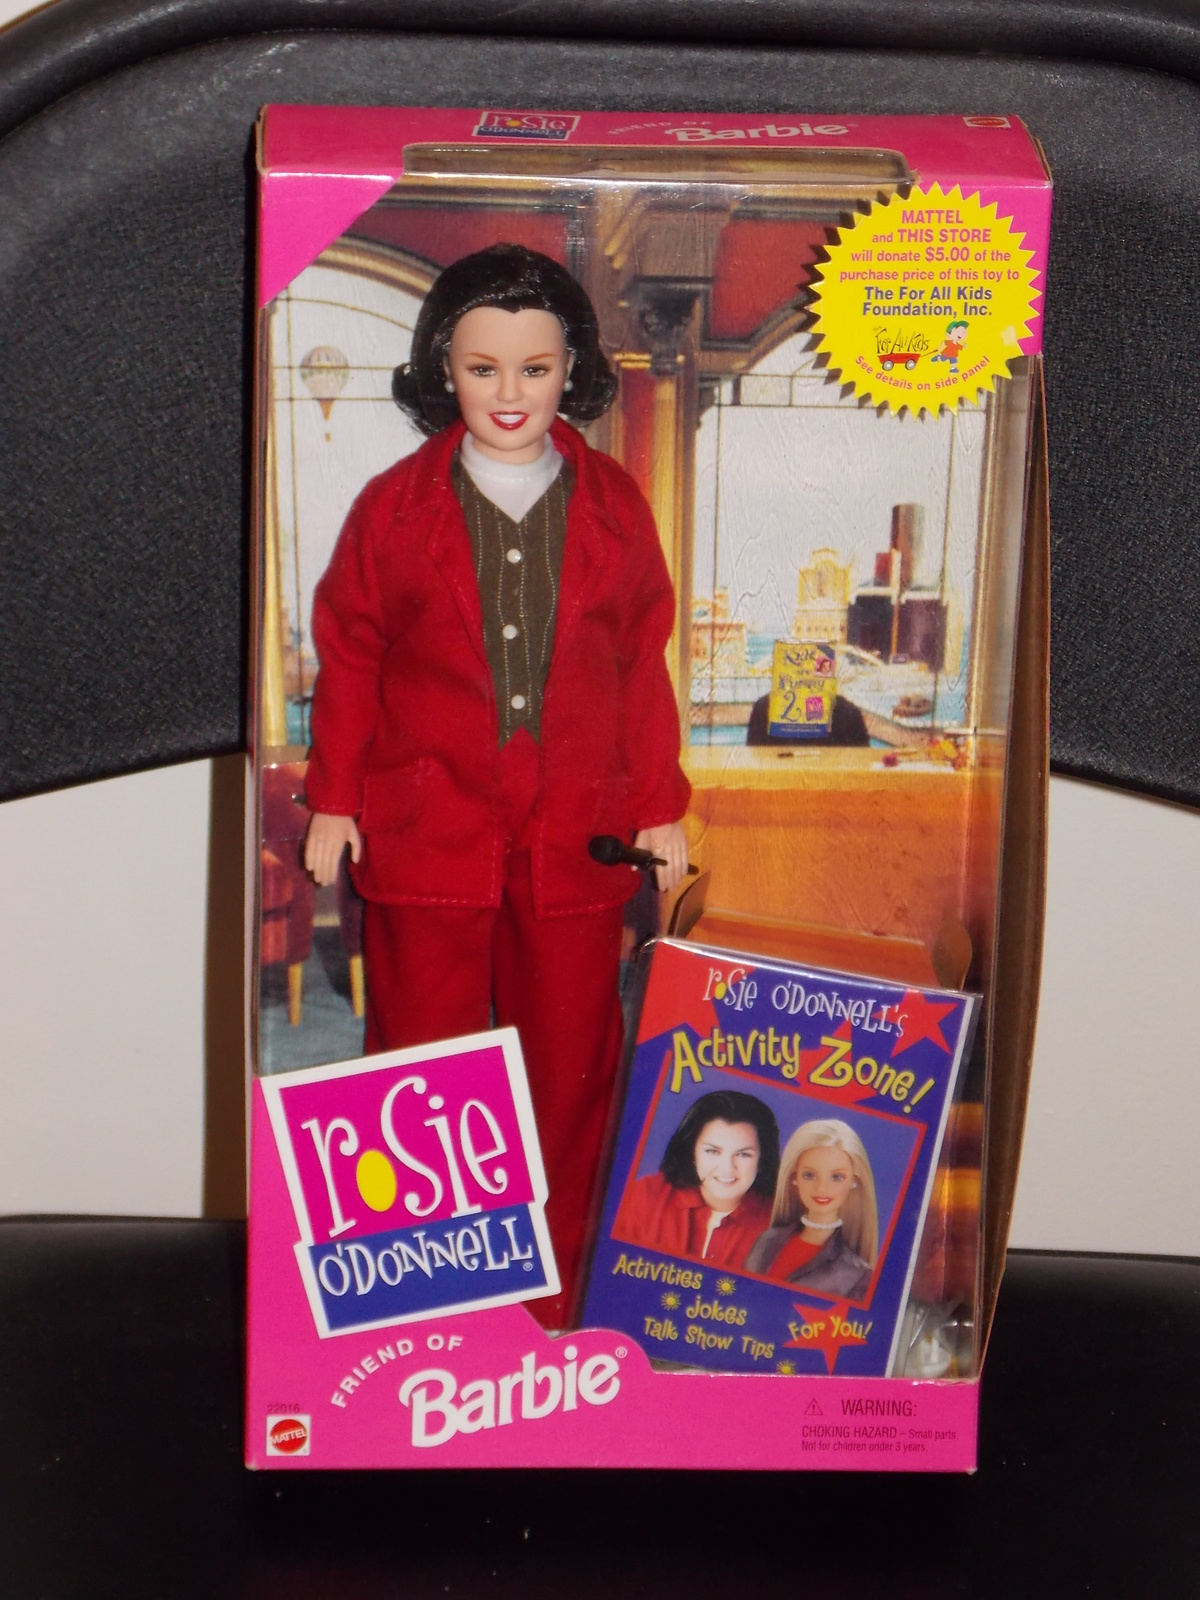 Primary image for 1999 Rosie ODonnell Barbie Doll New In The Box